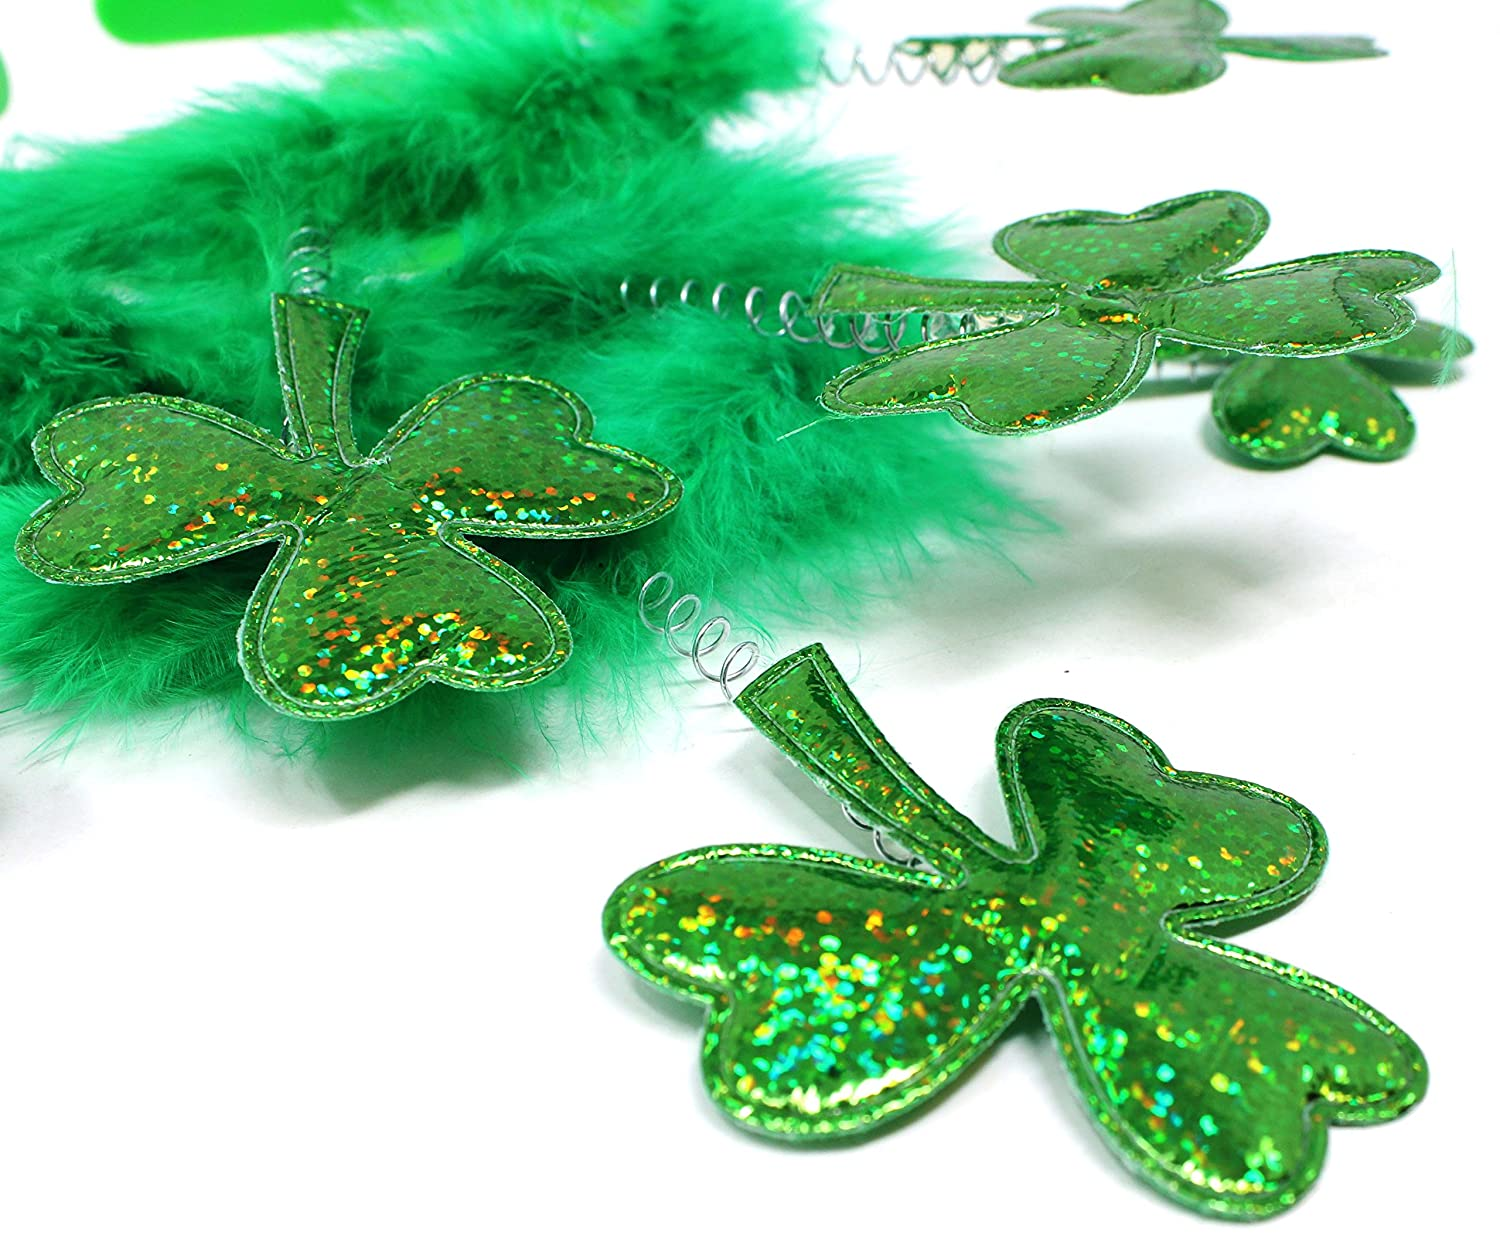 JOYIN 6 Pack St Patricks Day Green Shamrock Clover Headbands//Top Hat Saint Patricks Costume Accessories St Patricks Party Favors Decorations Joyin Inc